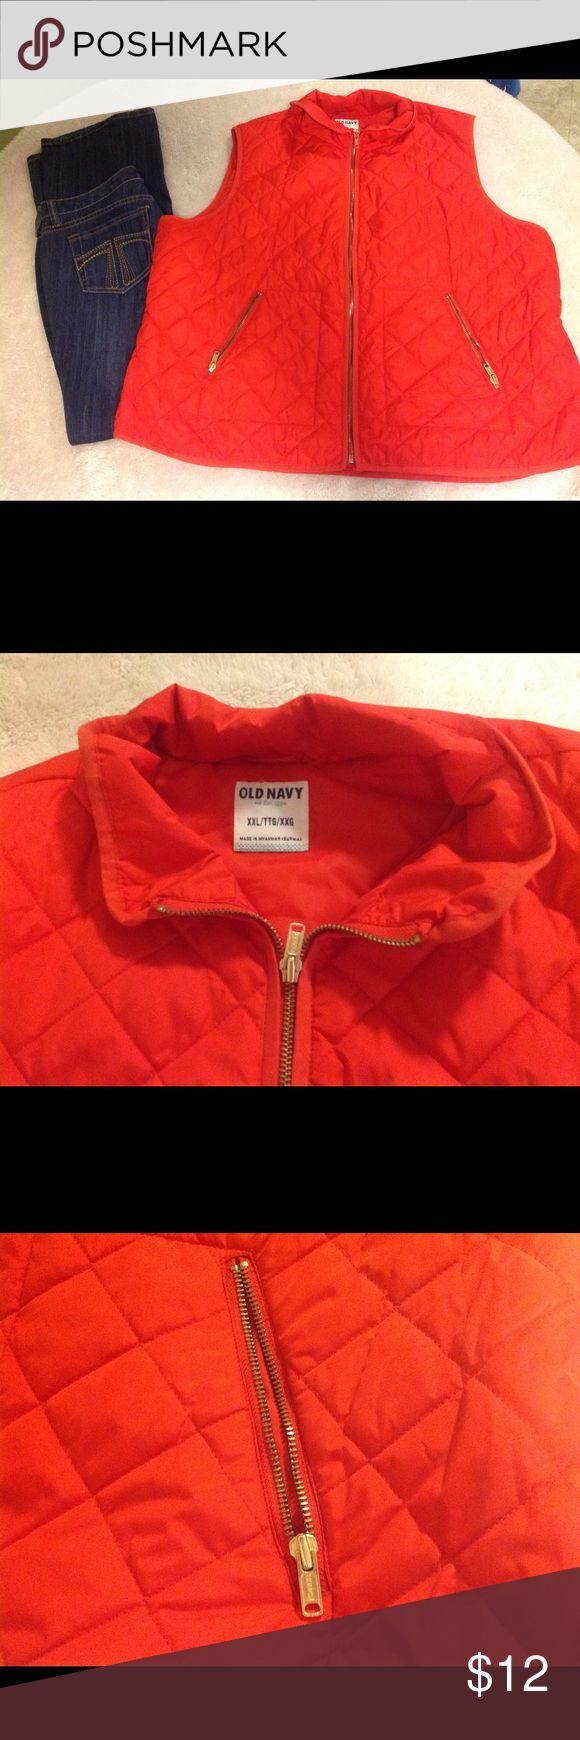 Old Navy vest XXL Old Navy vest size XXL. It is orange. Gold color zipper front and zipper pockets. 100% polyester. Good condition Old Navy Jackets & Coats Vests